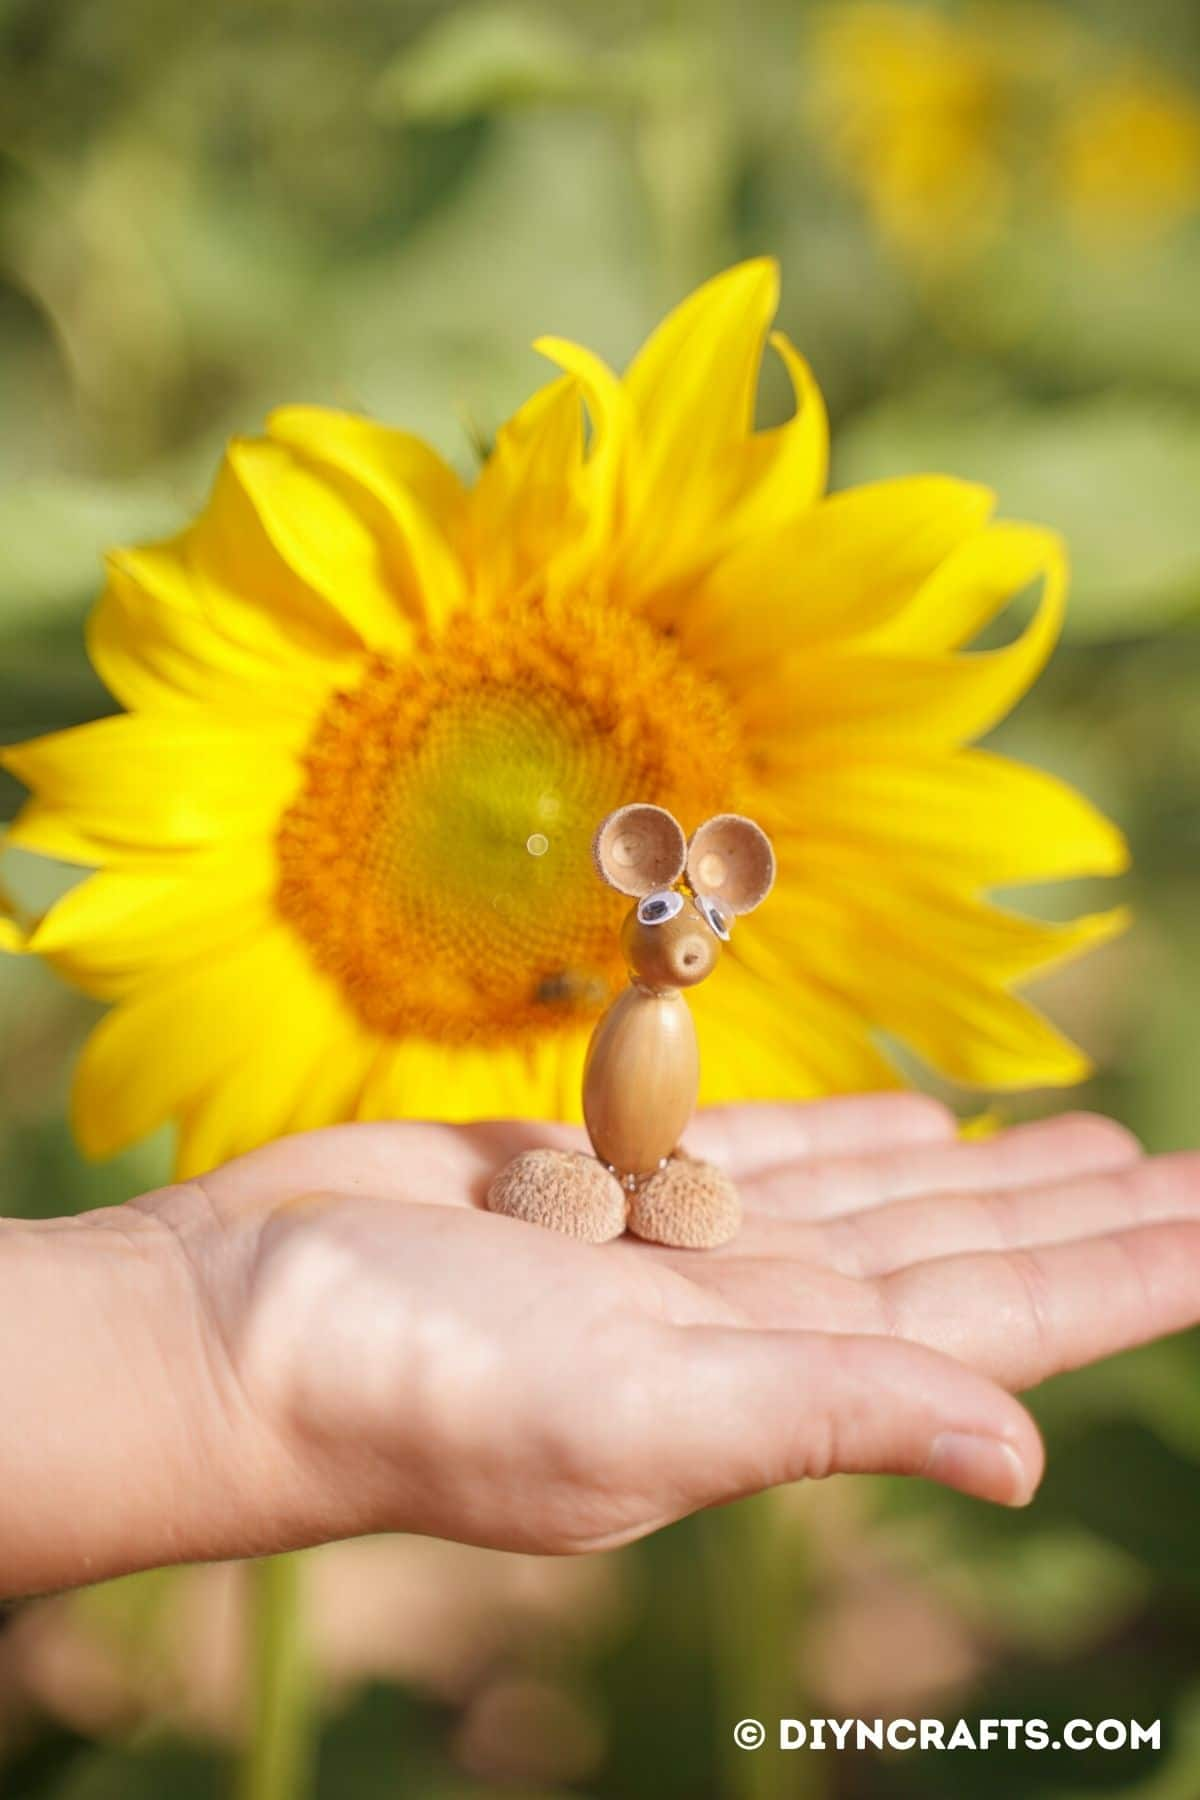 The hand holding the acorn mouse in front of the sunflower